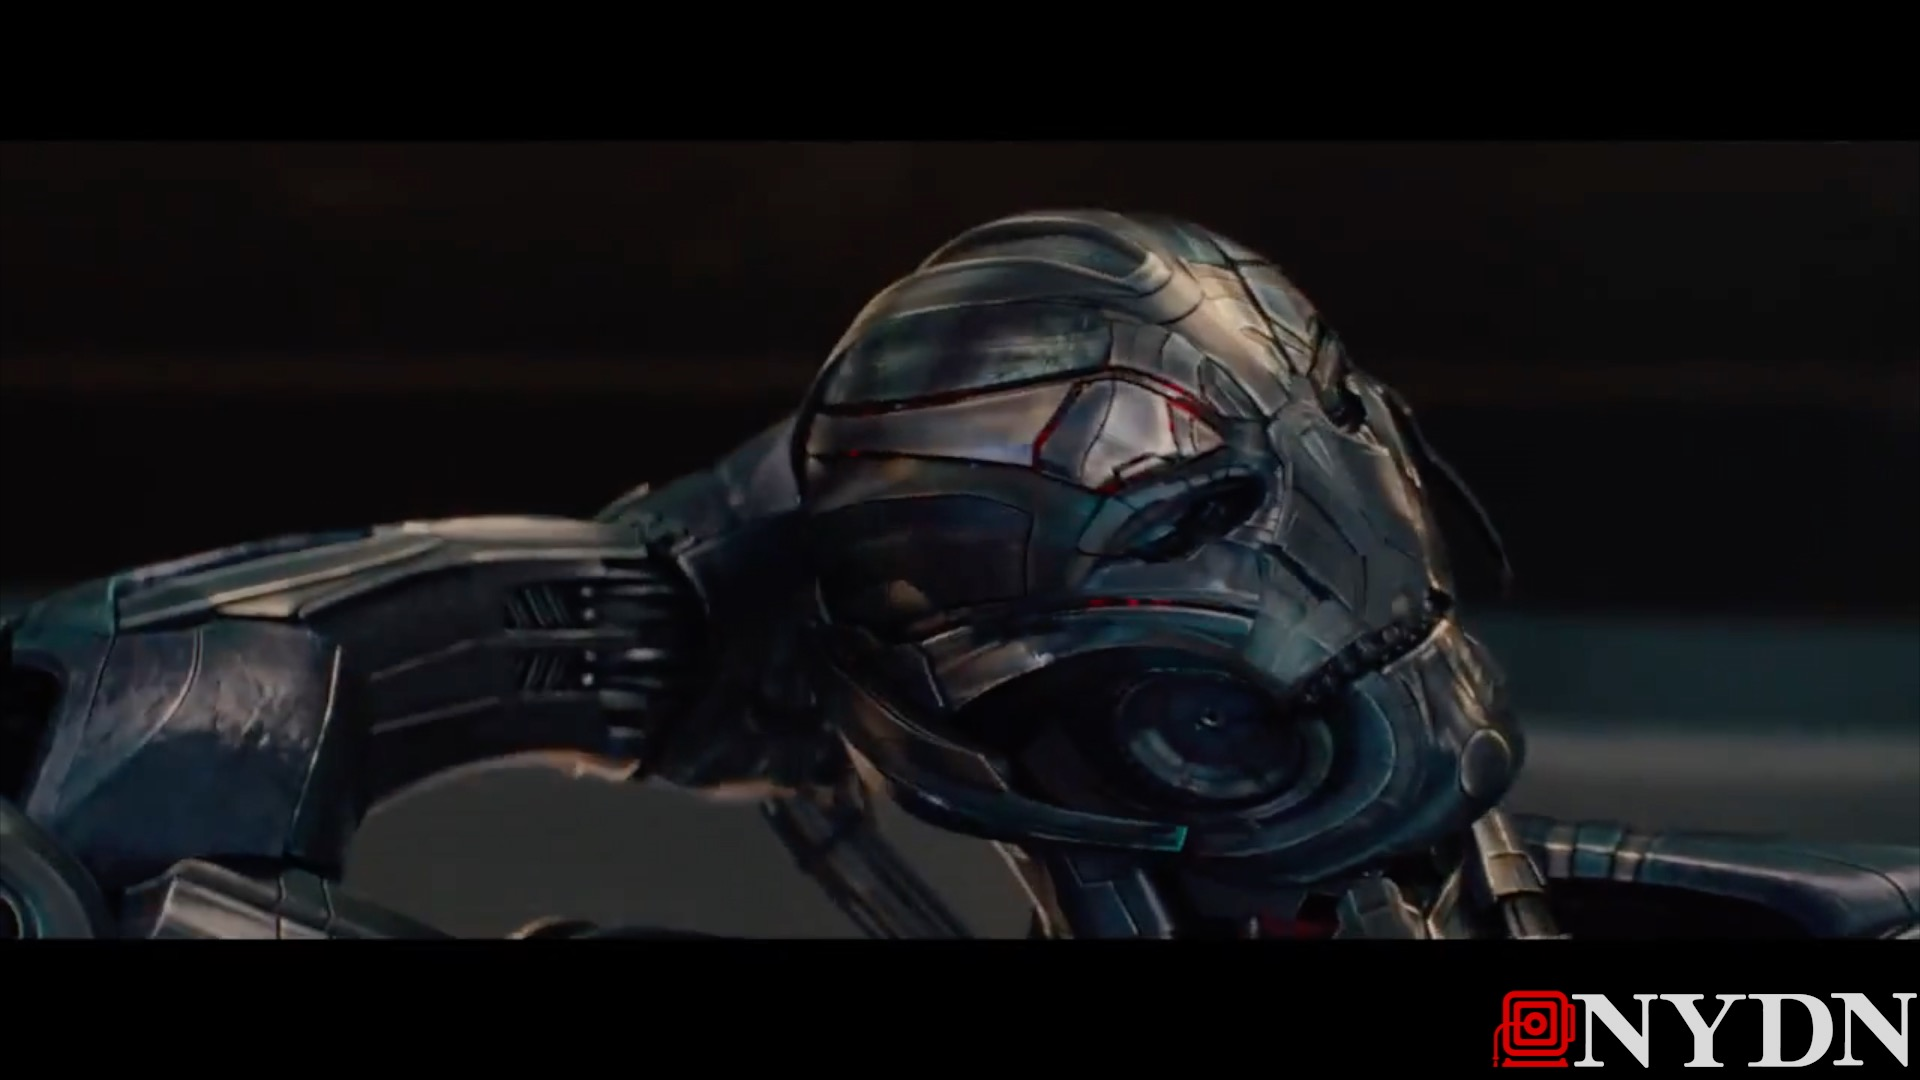 'Avengers: Age of Ultron' trailer gives glimpse of Vision